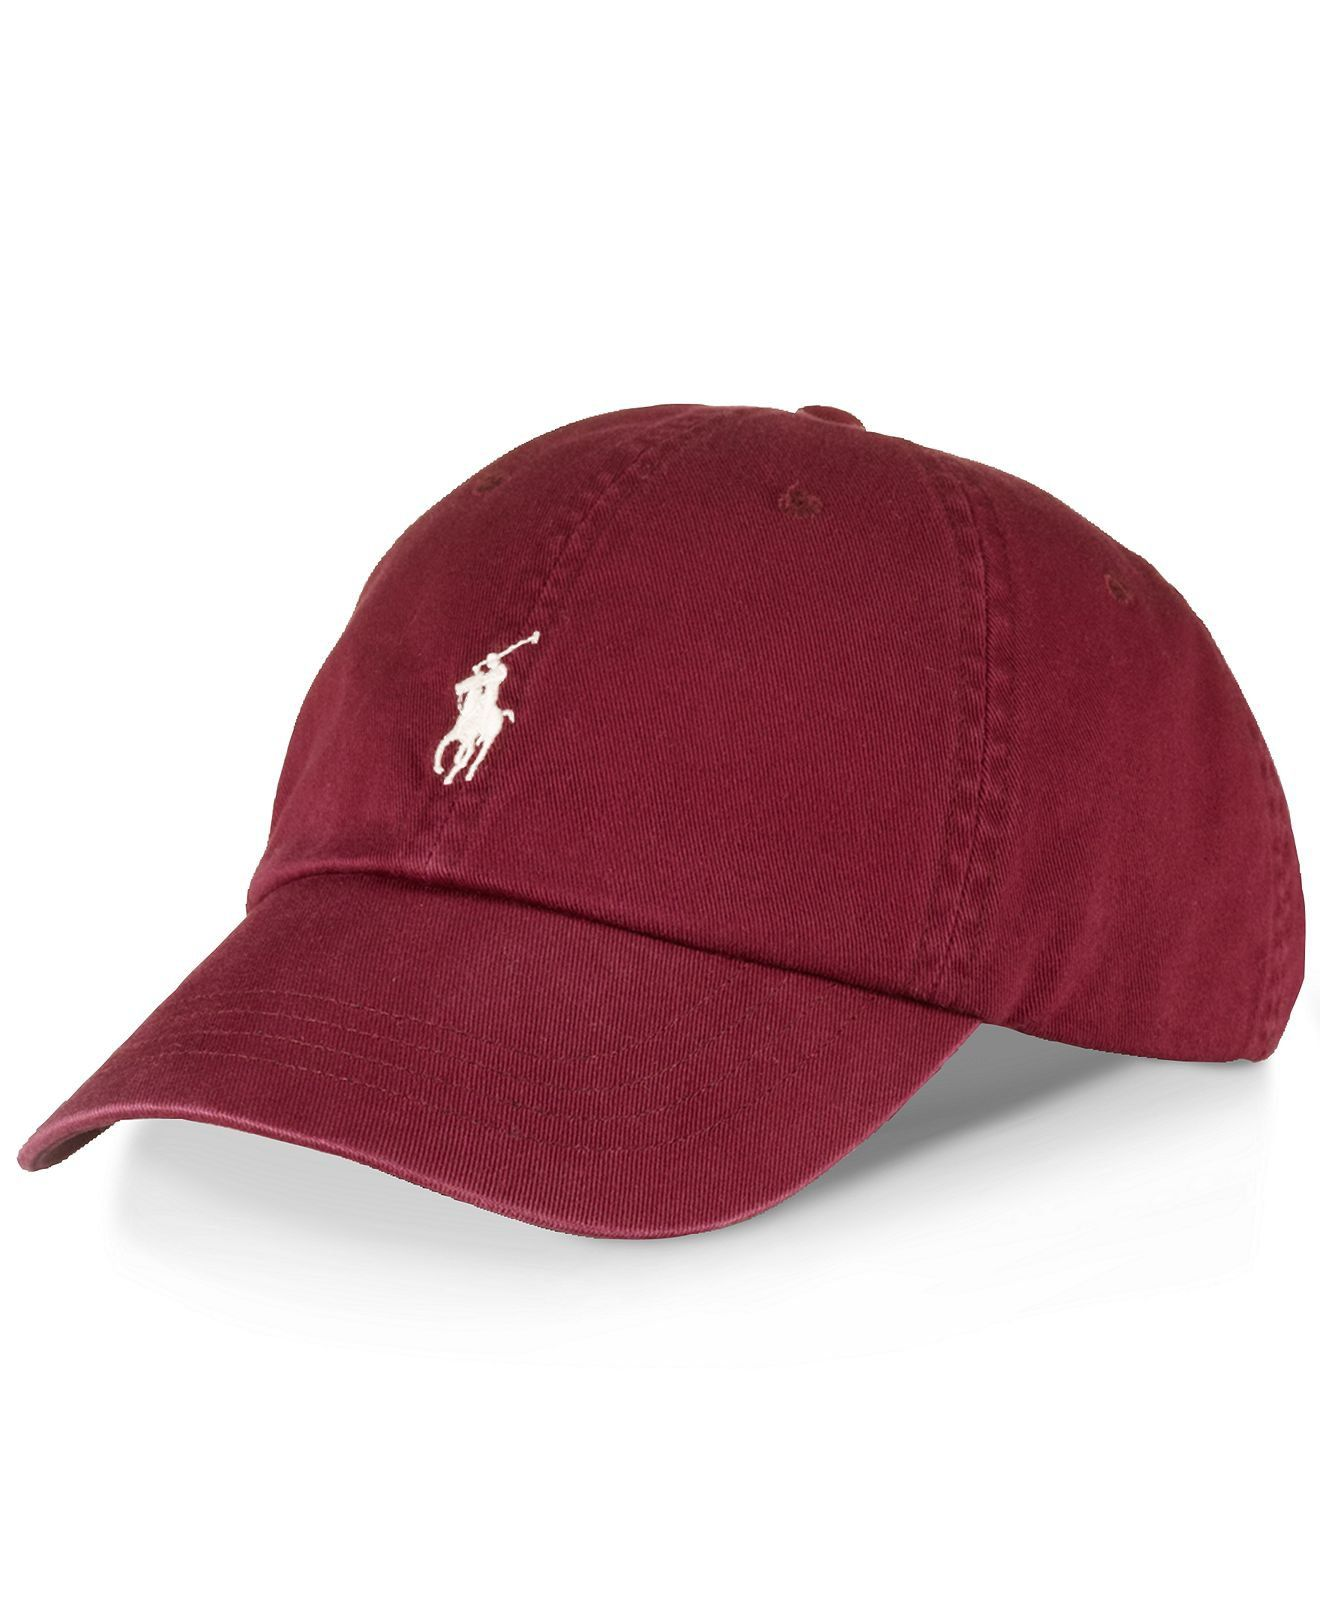 Polo Ralph Lauren Hat, Classic Chino Sports Cap on Wanelo   Fashhh ... c6d354cb333